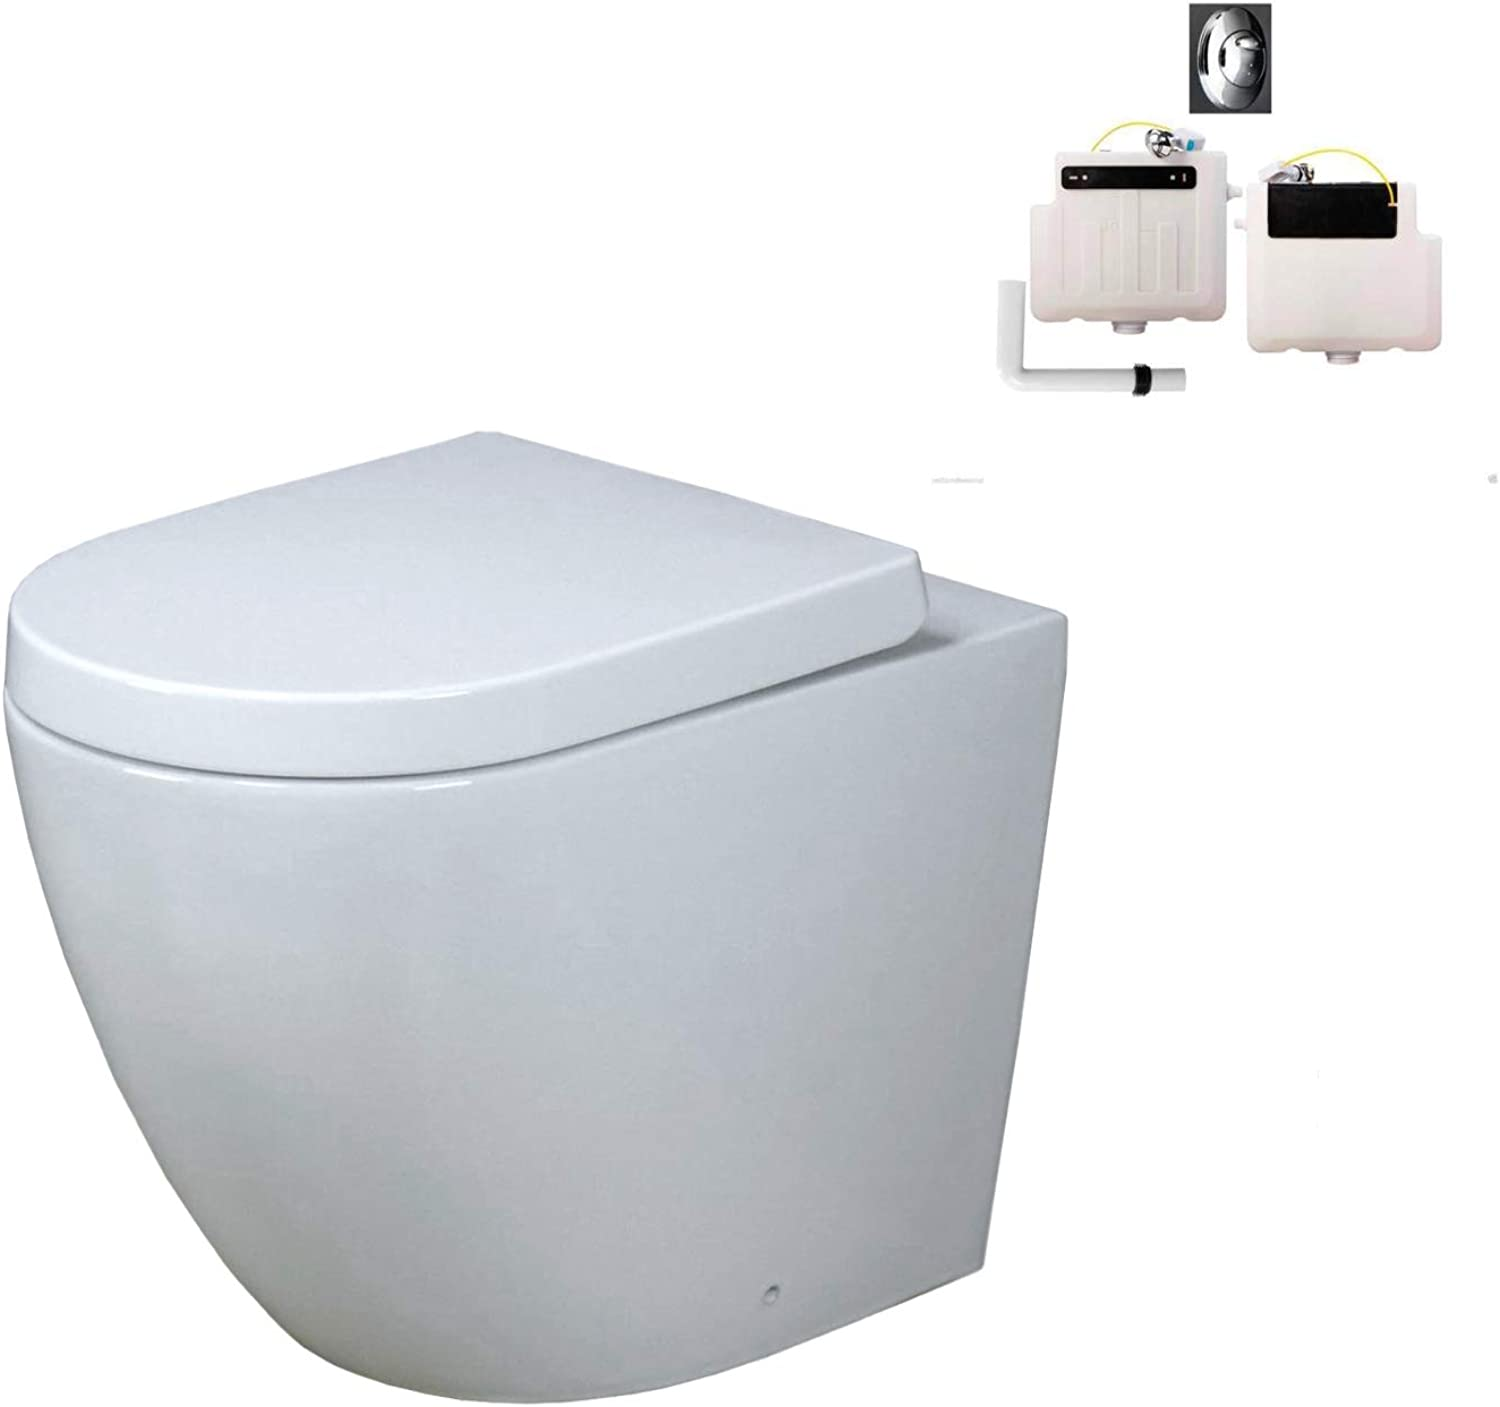 KLARA Toilet WC WC WC Back To Wall Concealed Cistern Cloakroom White Soft Close Seat 405c89